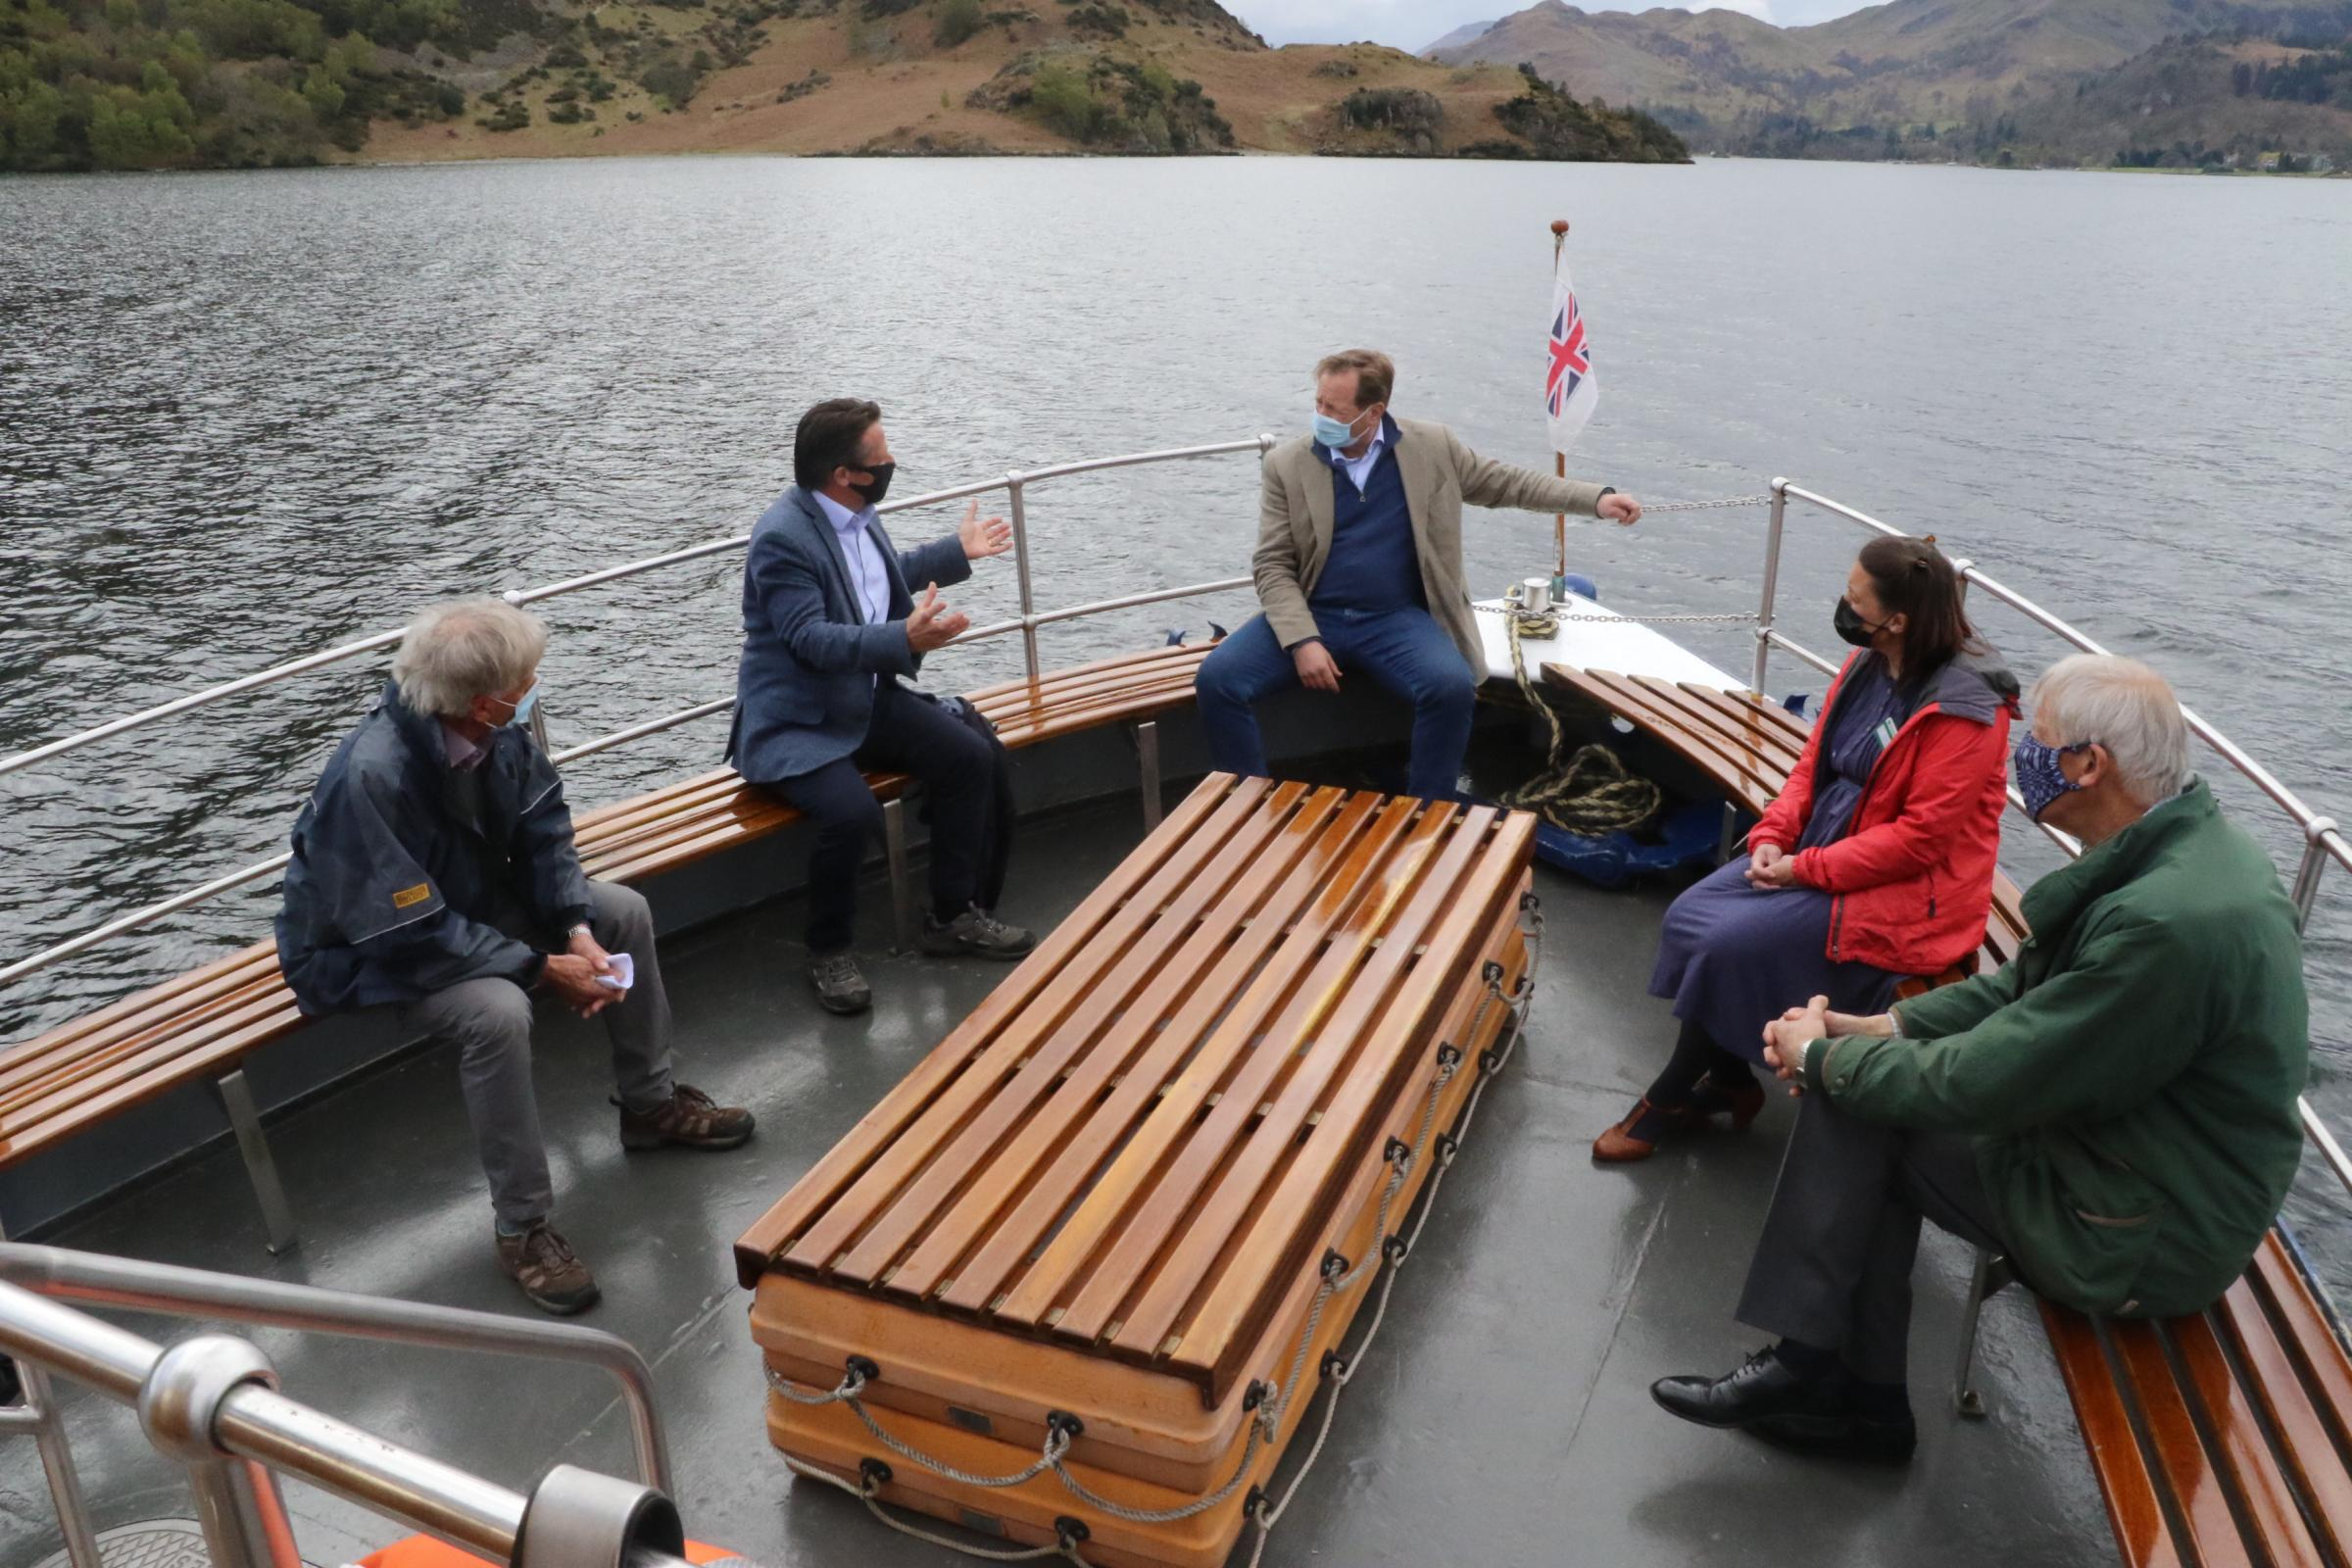 TOURISM: Nigel Huddleston MP speaking to local representatives abord an Ullswater 'Steamer